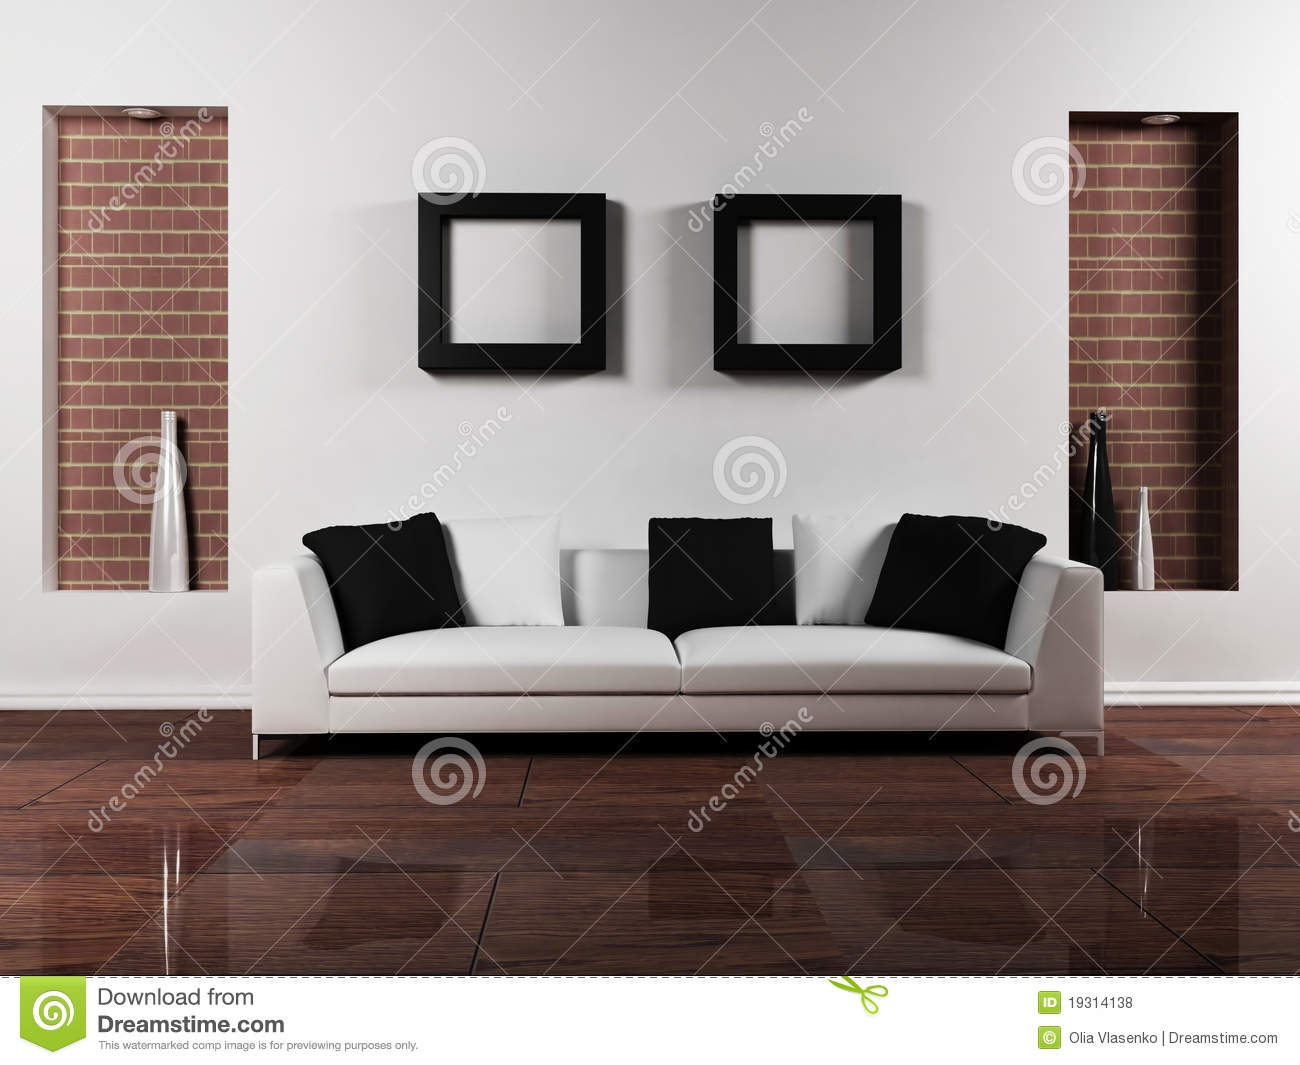 Modern interior design of living room royalty free stock for Modern interior